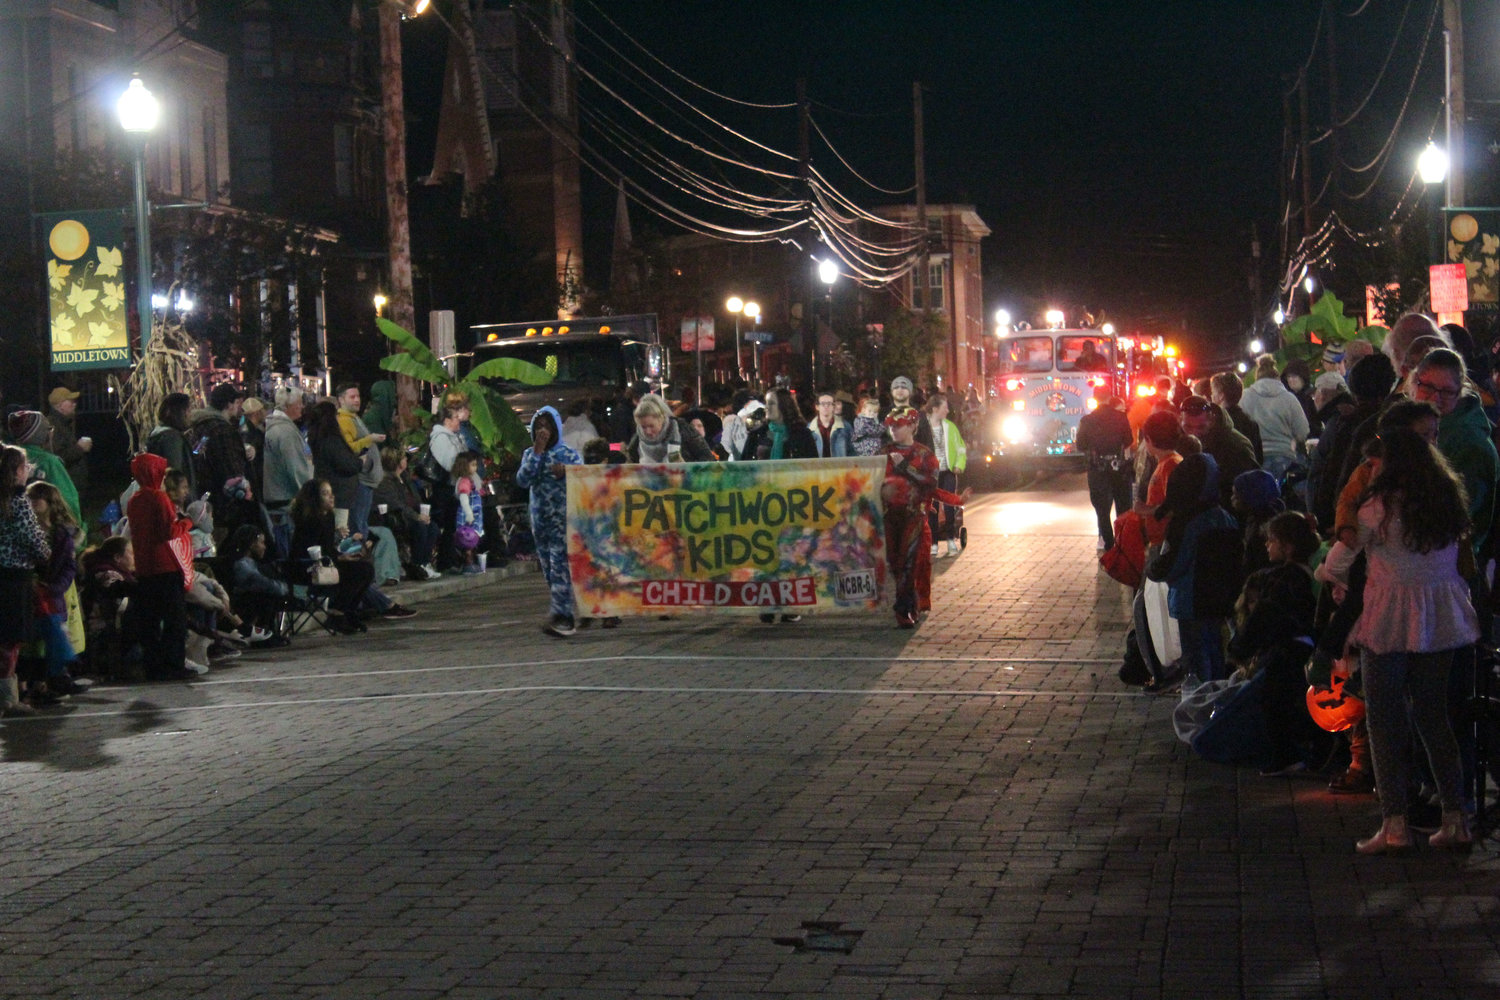 Patchwork Kids Child Care walk during the Halloween parade on Oct. 16.